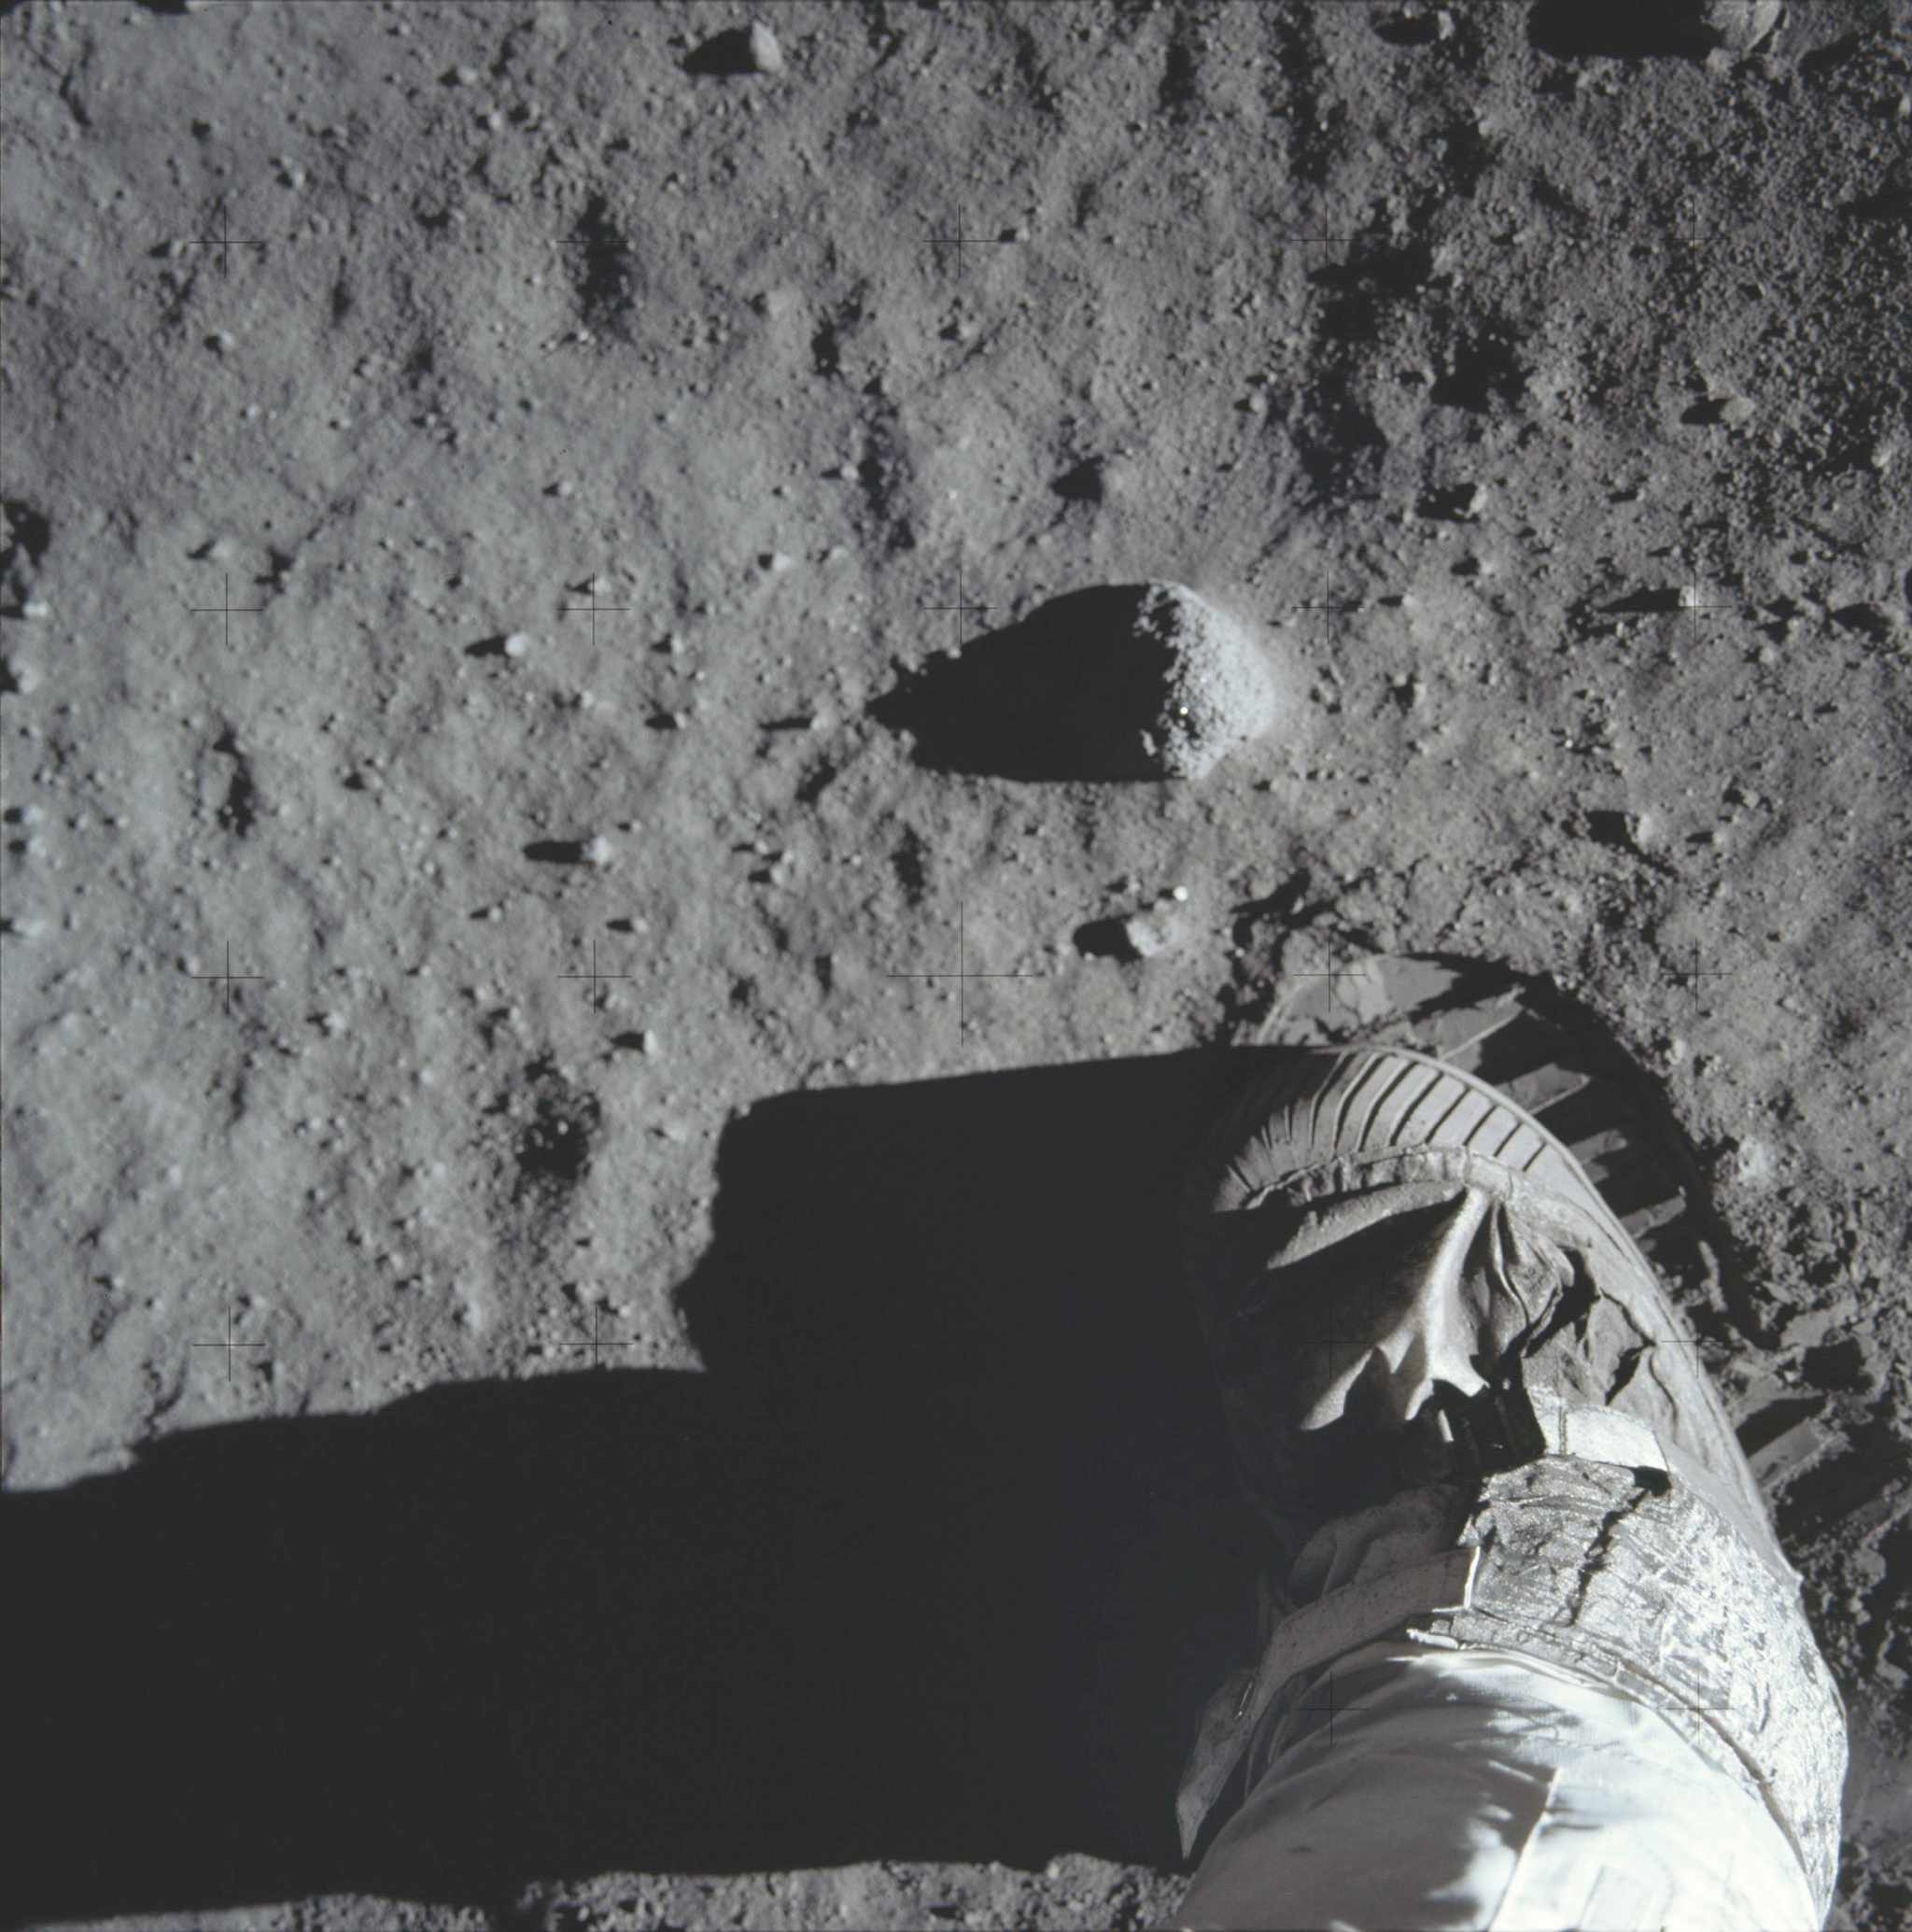 Aldrin photographed the impression his spacesuit's boot left in the lunar surface so that experts back home could study its soil mechanics. © NASA/JPL